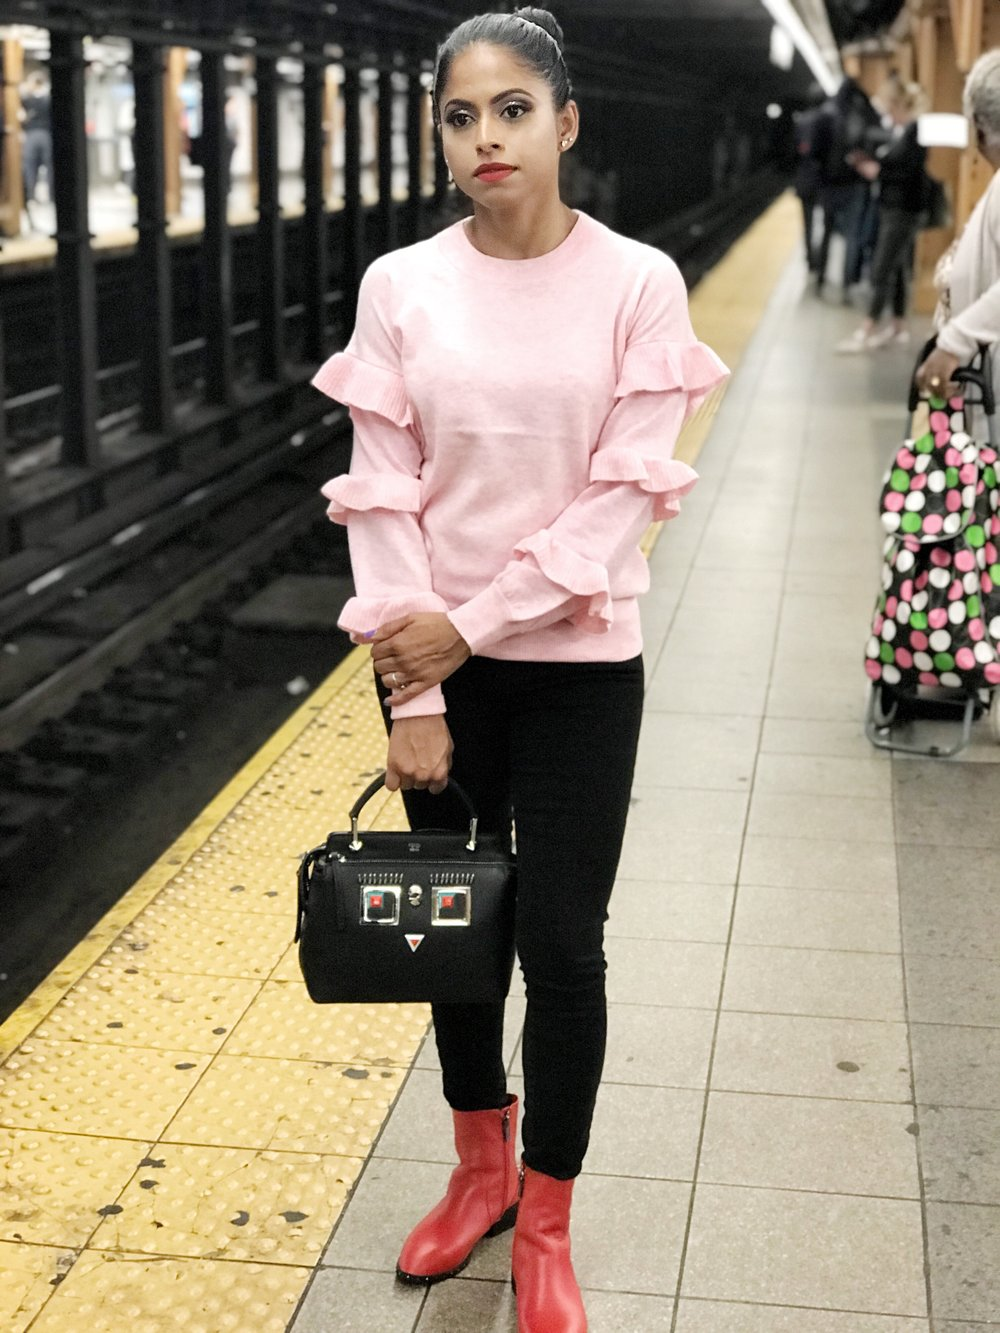 Pairing Red and Pink! — TrendyFitDoc